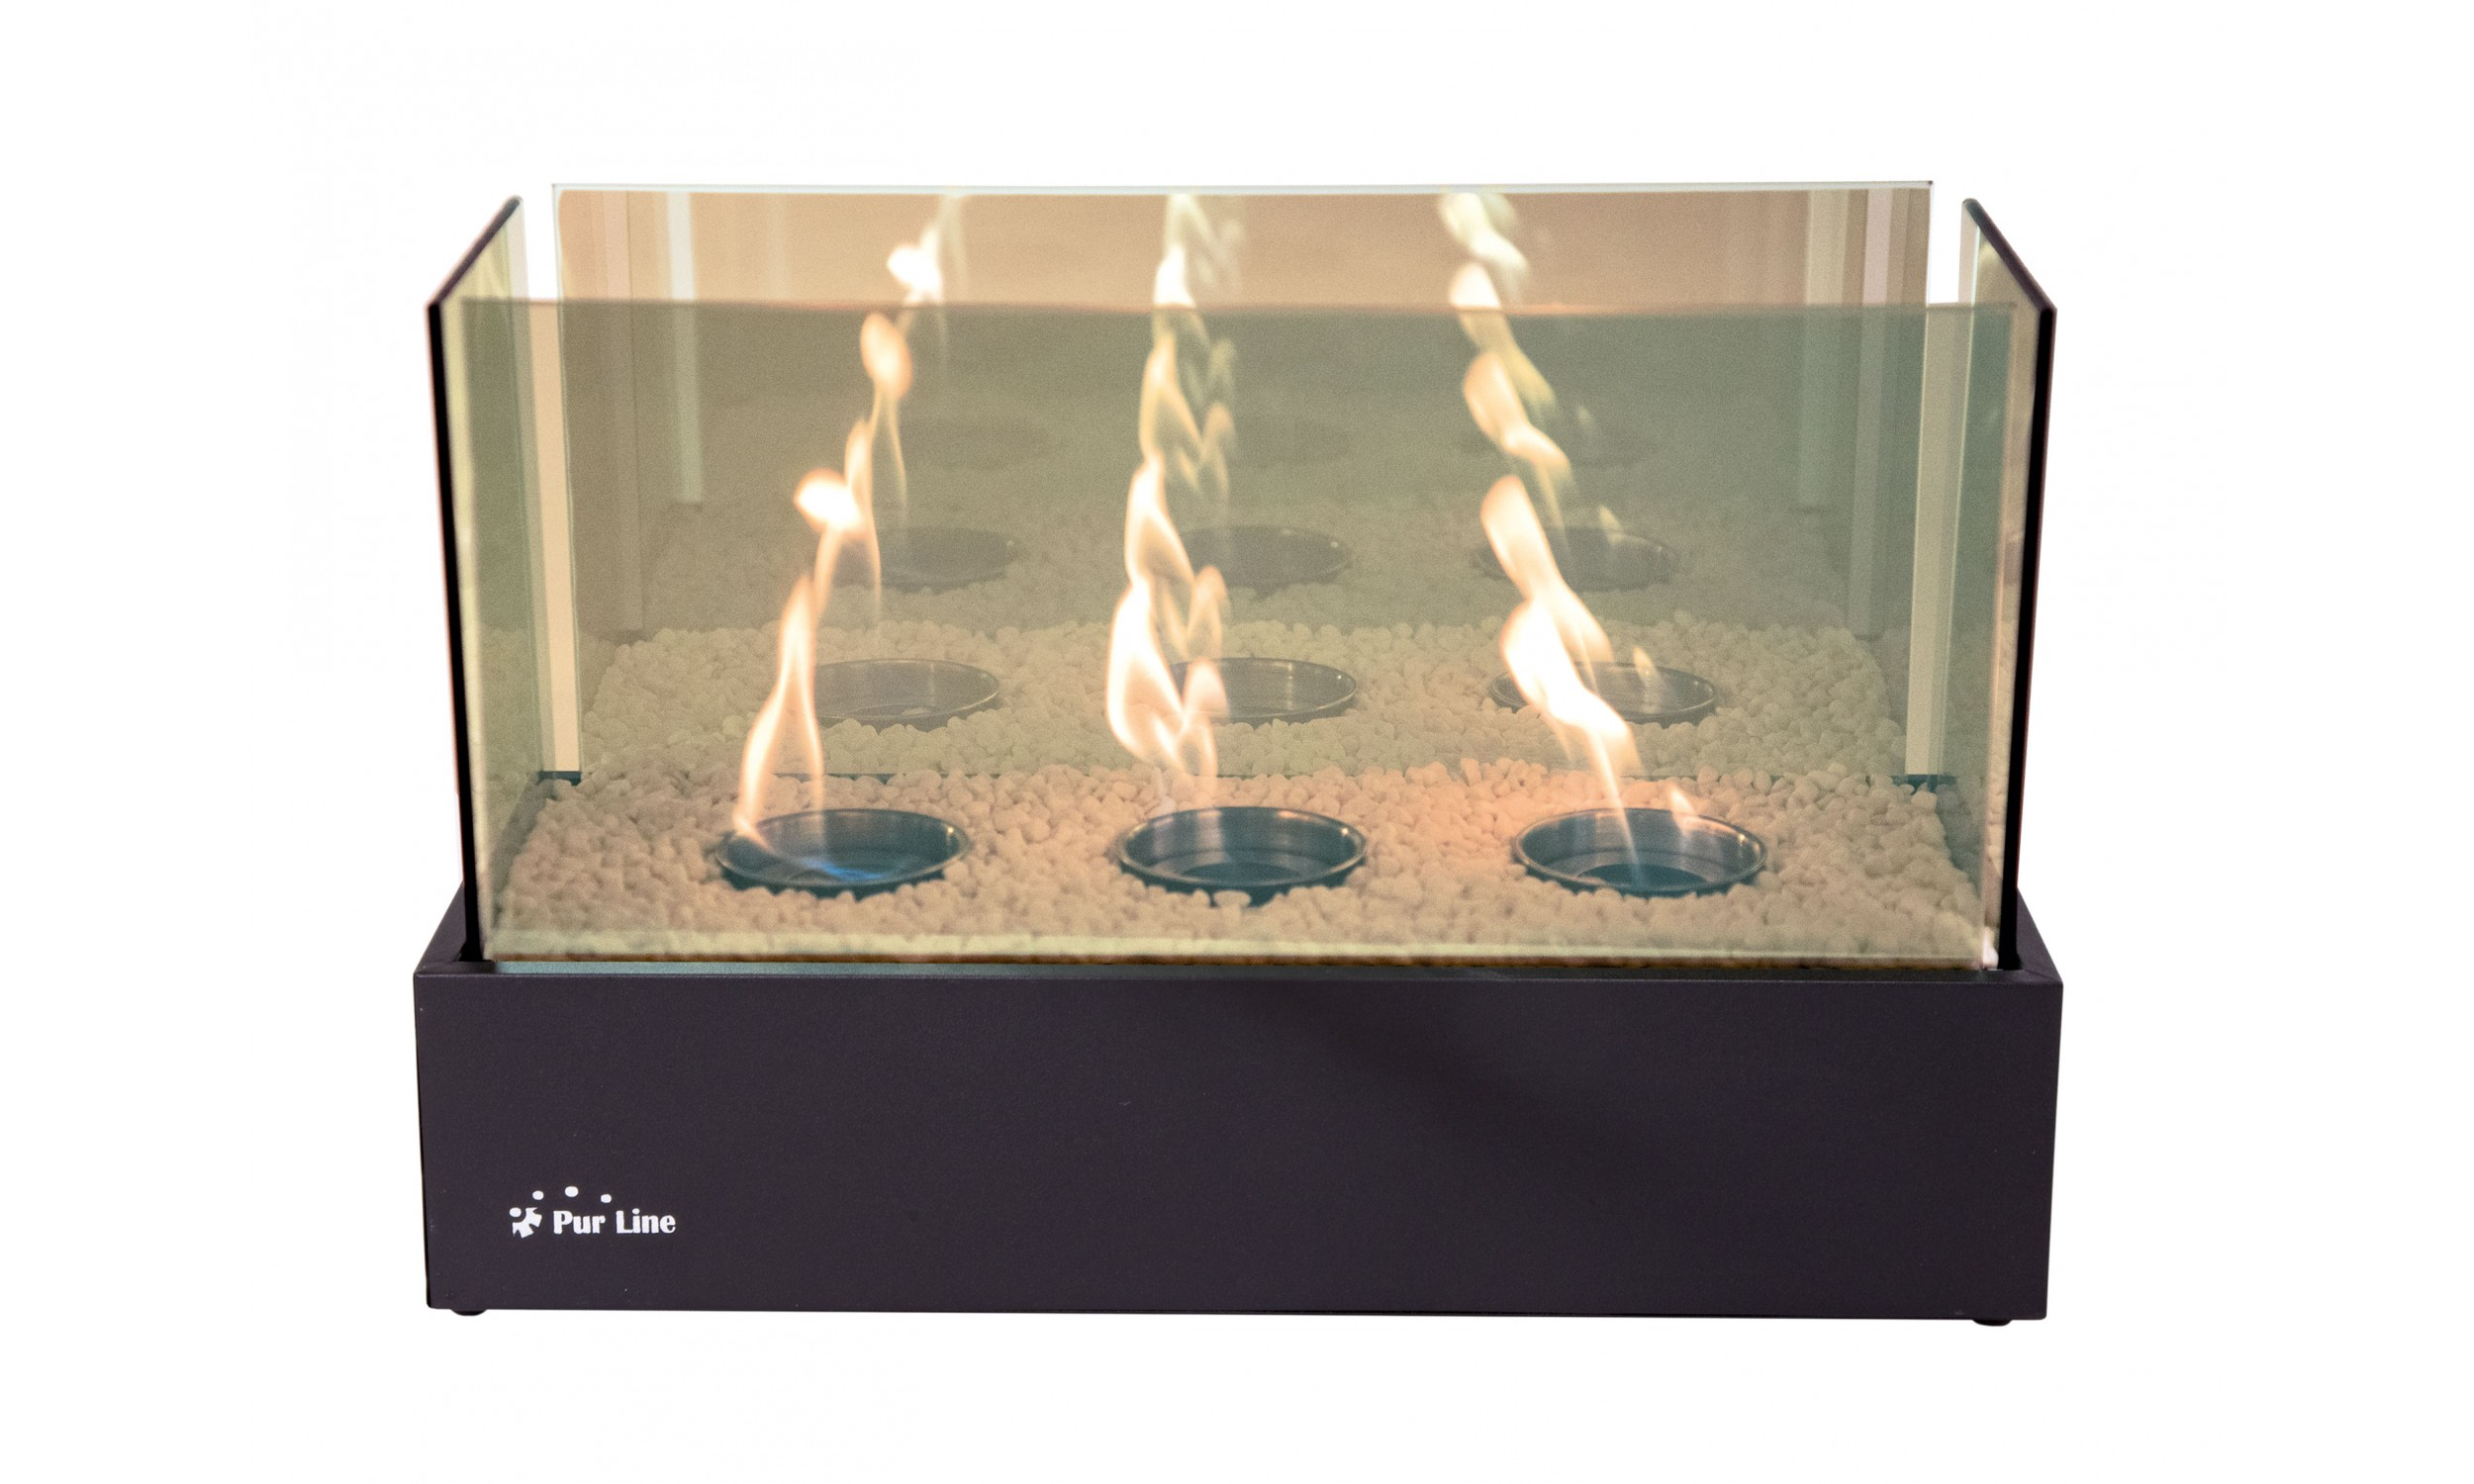 Bio-fireplace with Infinity flamme effect NYMPHA PLUS INFINITY